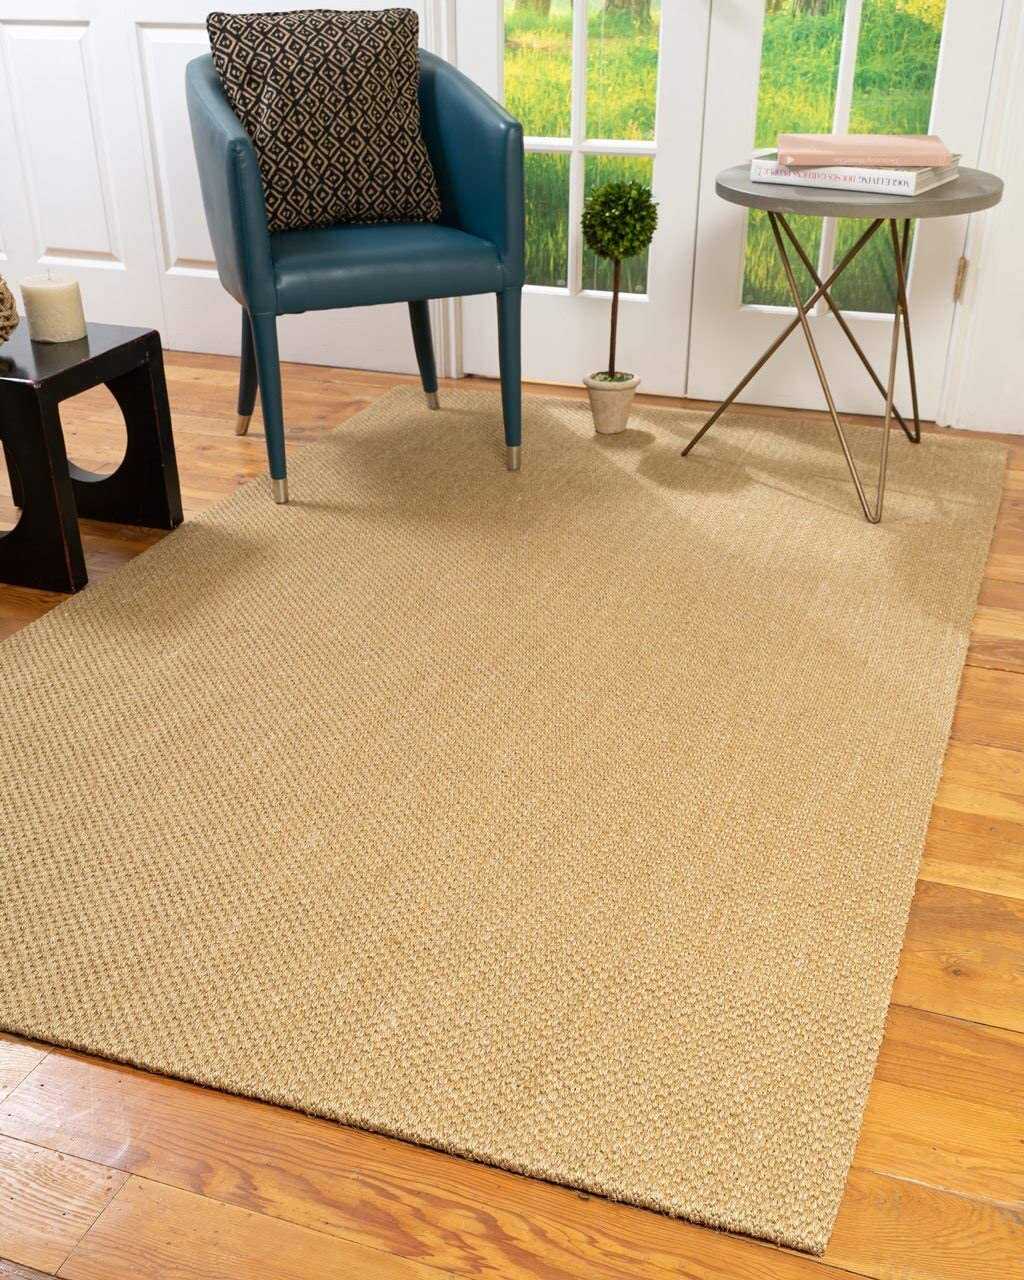 Natural Super sale Area New product Rugs 100% Fiber Handmade Beige Sis Montage